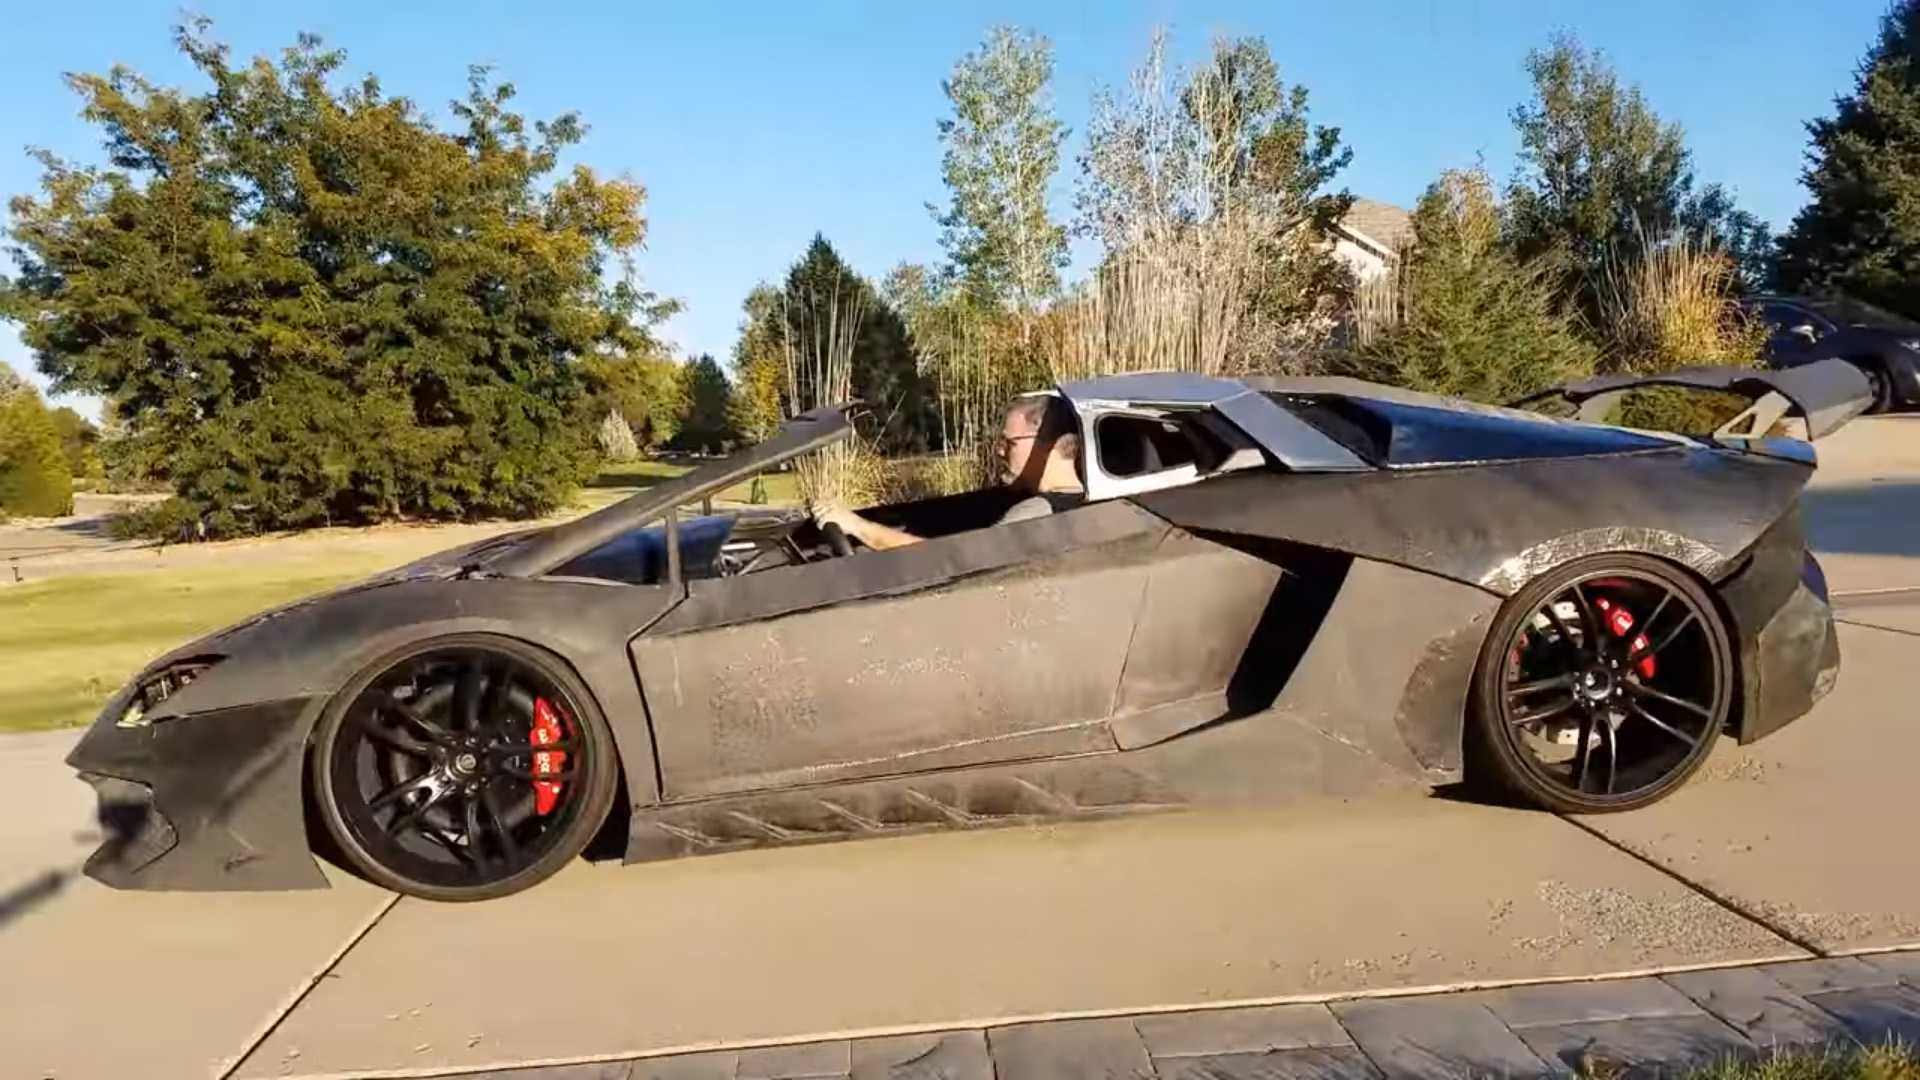 Coolest Dad In The World 3D Prints A Working Lambo Aventador For Son